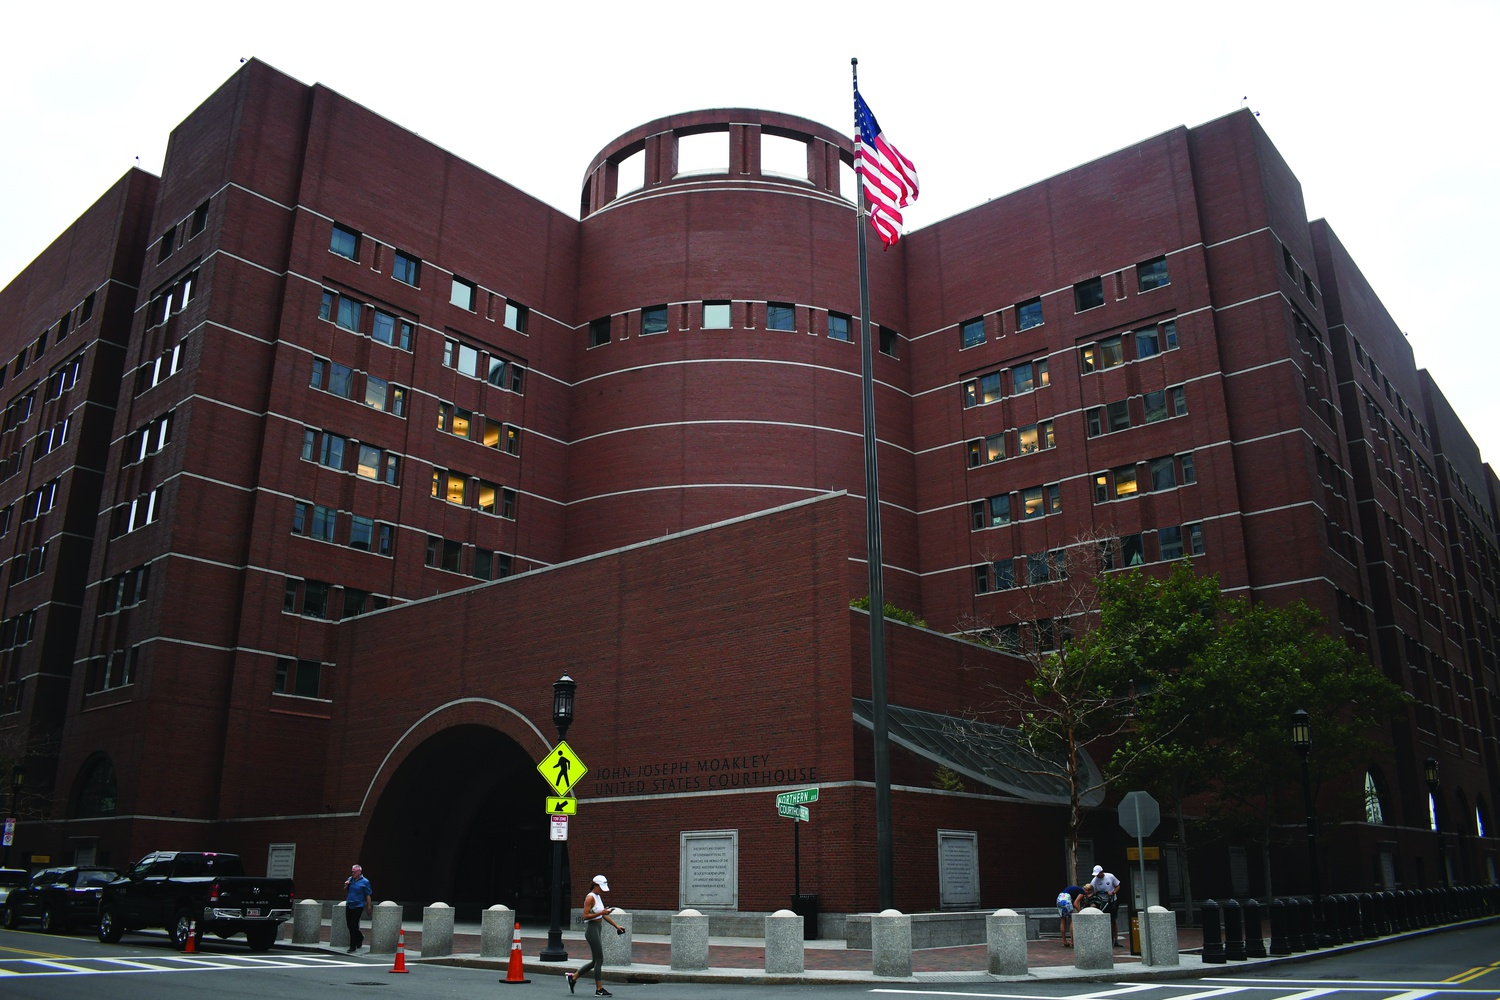 The John Joseph Moakley Courthouse in Boston was the site of the three-week admissions trial.